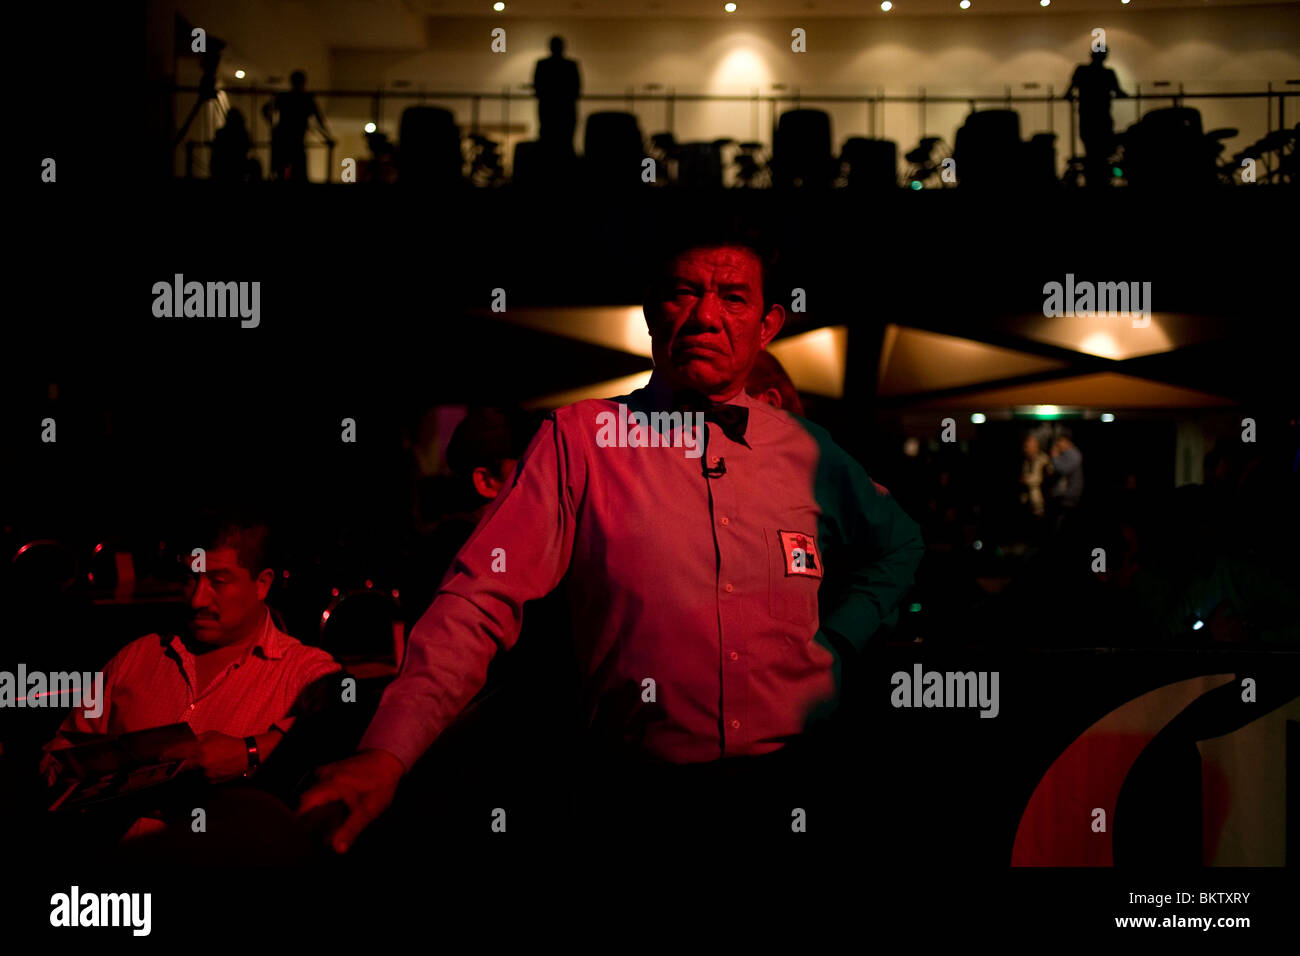 A boxing referee waits for the boxers before a bout Mexico City, September 30, 2009. - Stock Image